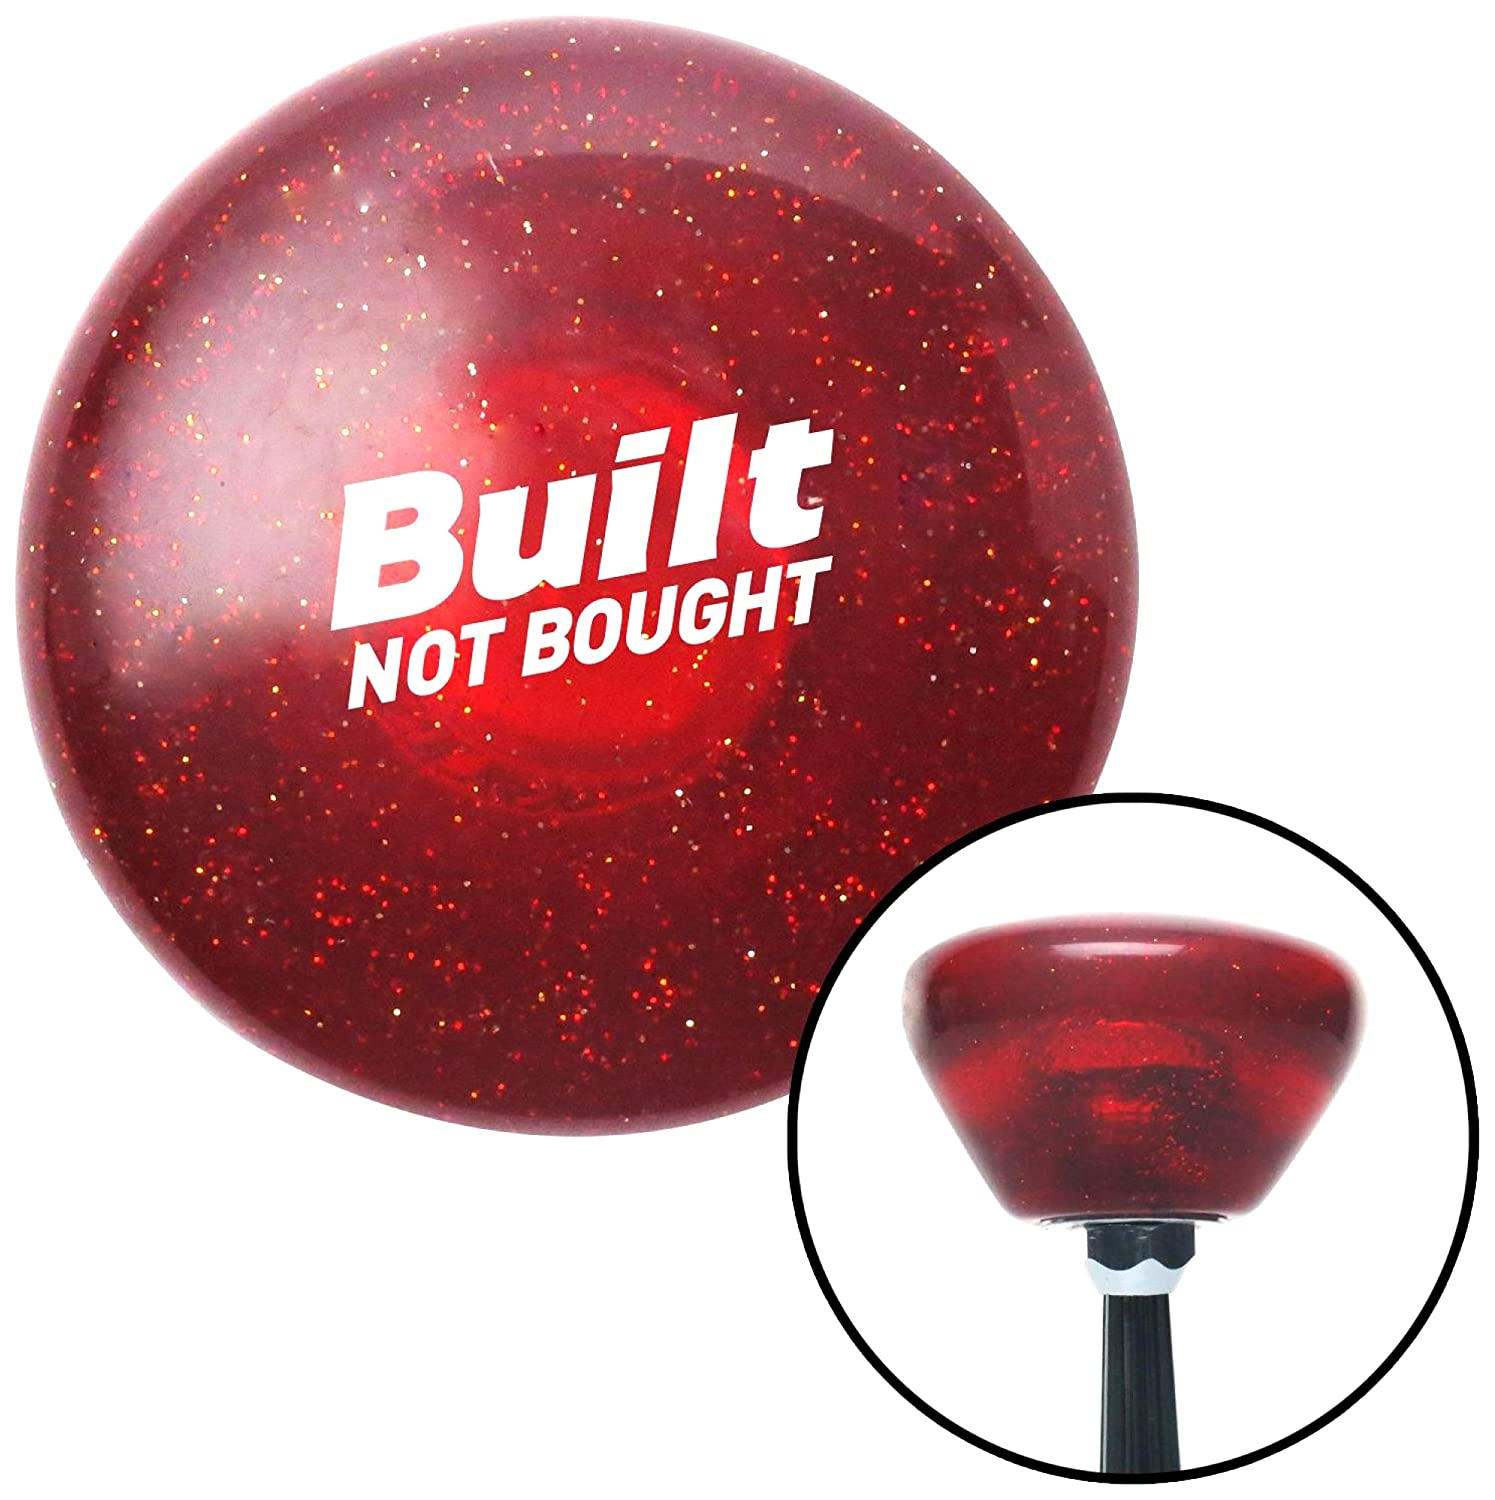 American Shifter 327717 Black Built Not Bought Simple Red Retro Metal Flake Shift Knob with M16 x 1.5 Insert